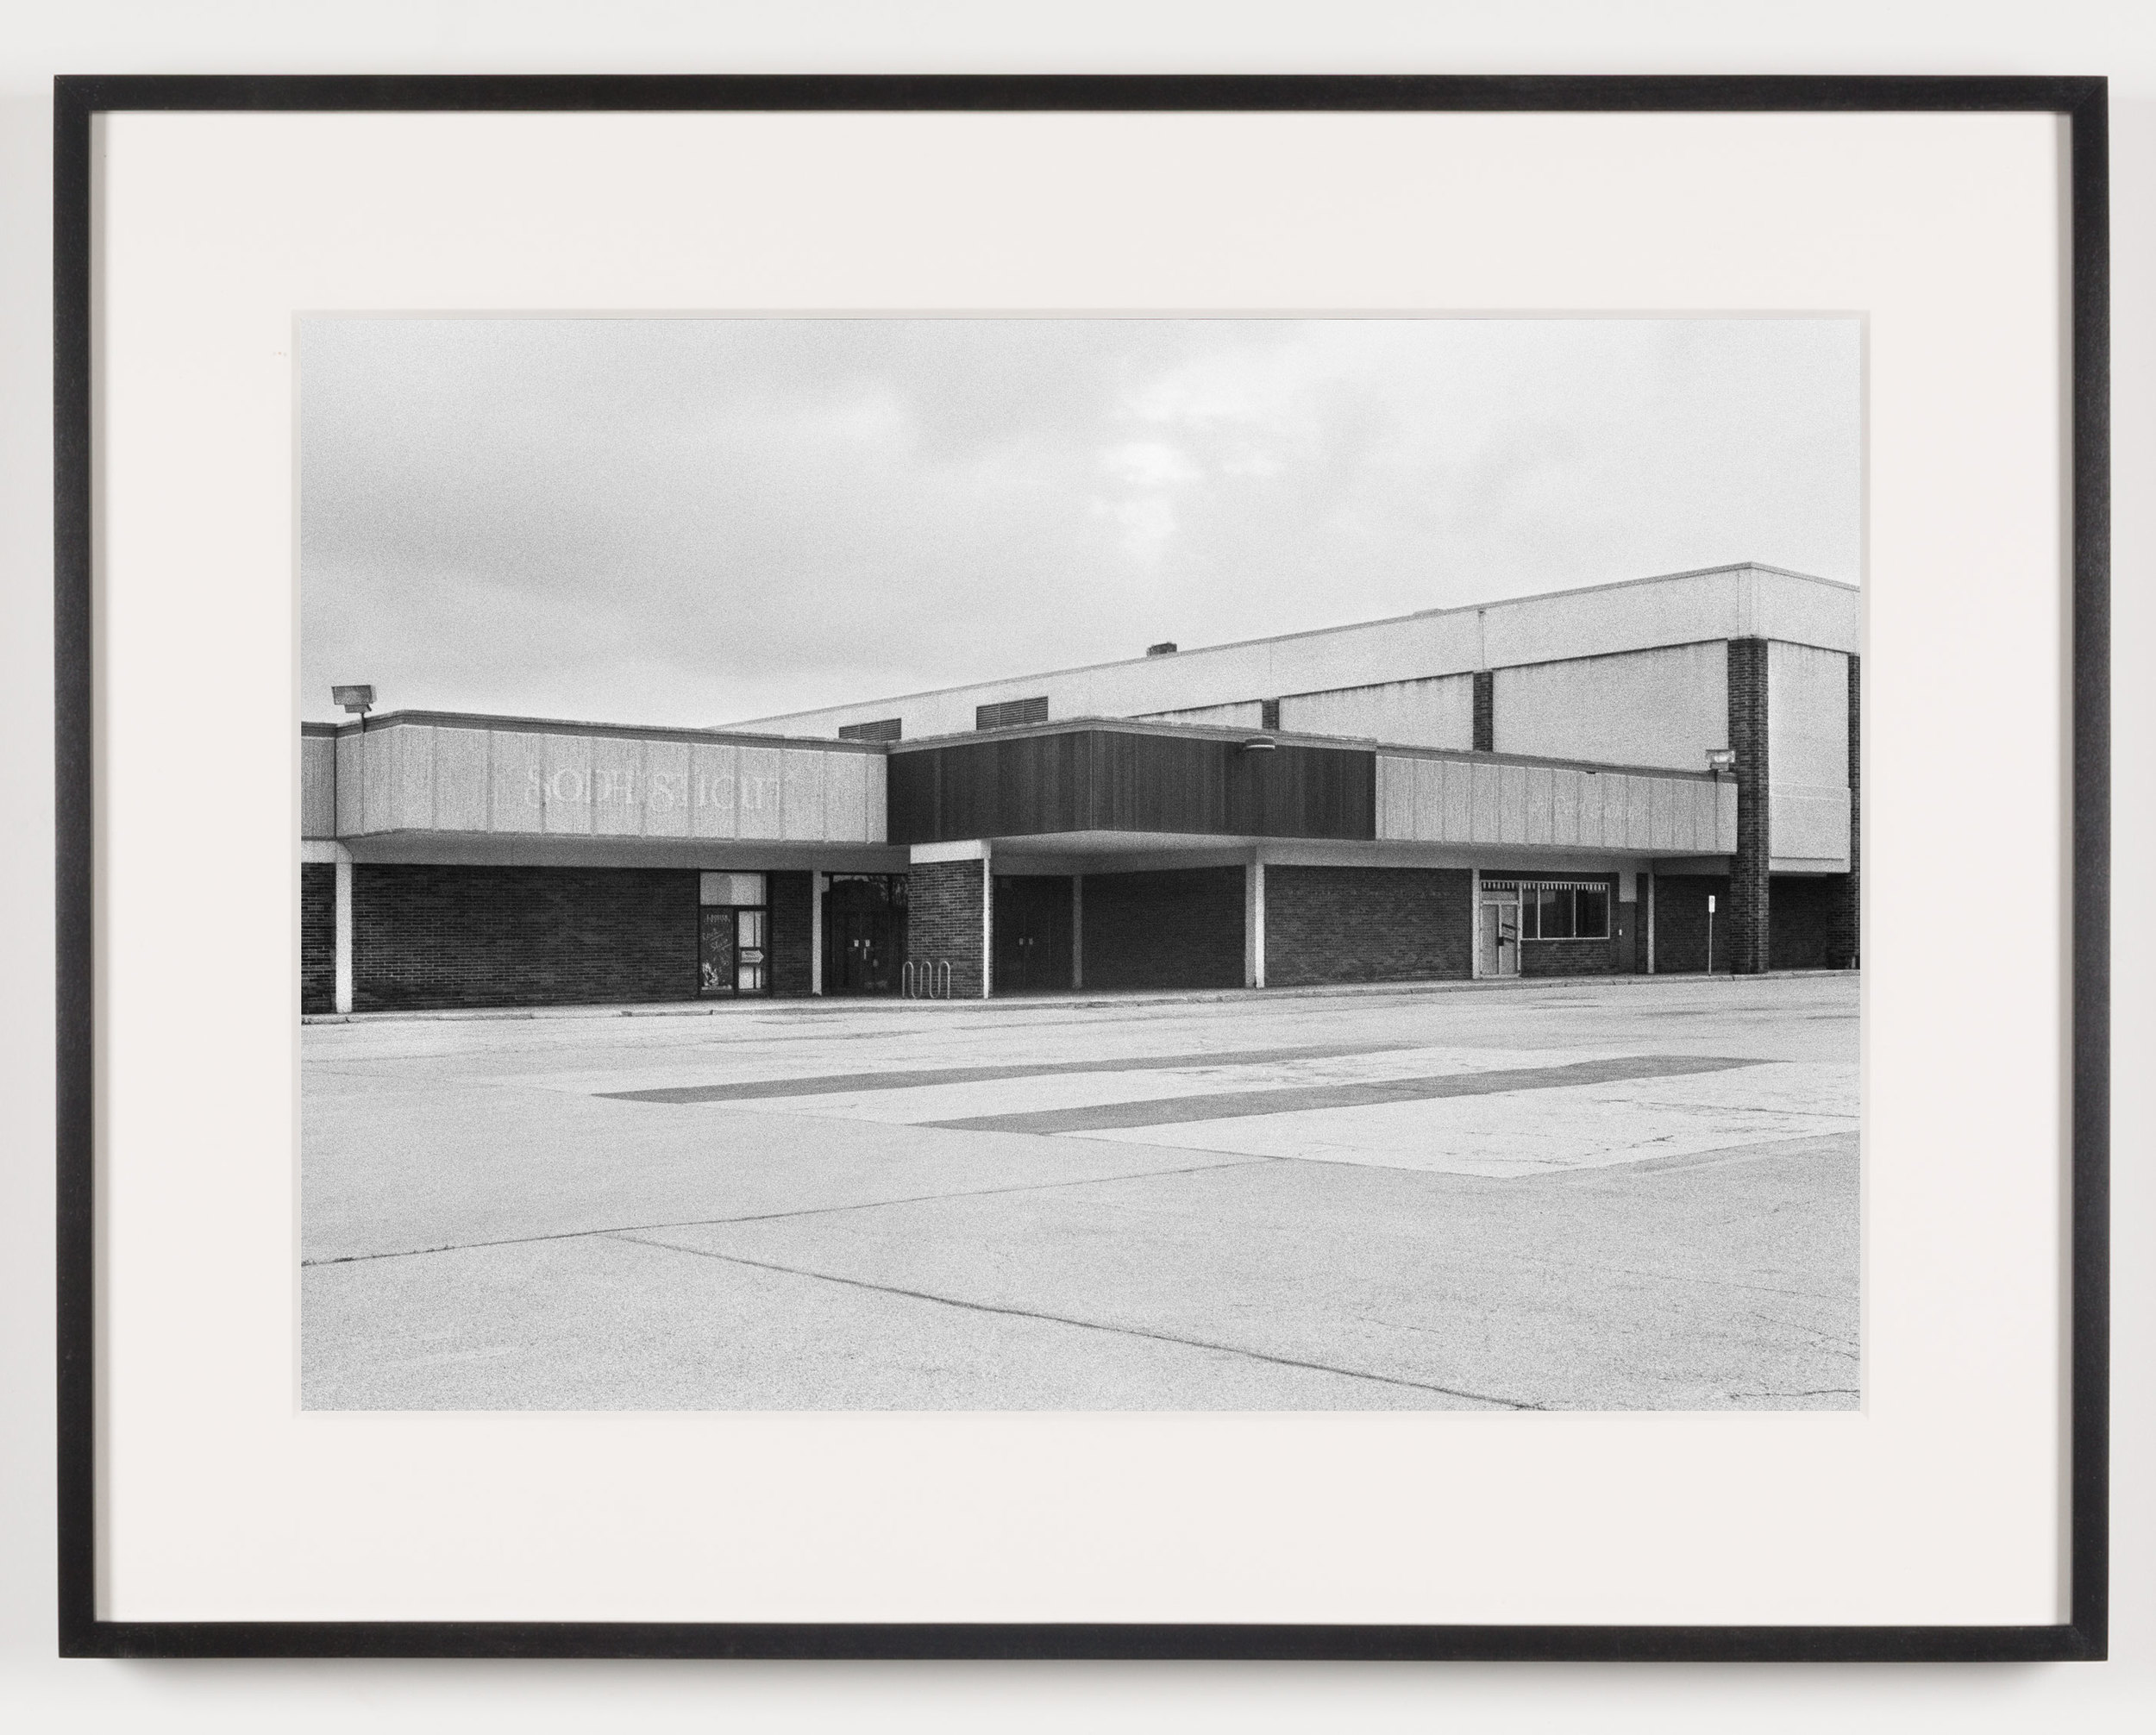 Southwyck Mall ('Sophisticut'), Toledo, OH, Est. 1972, Demo. 2009    2011   Epson Ultrachrome K3 archival ink jet print on Hahnemühle Photo Rag paper  21 5/8 x 28 1/8 inches   A Diagram of Forces, 2011